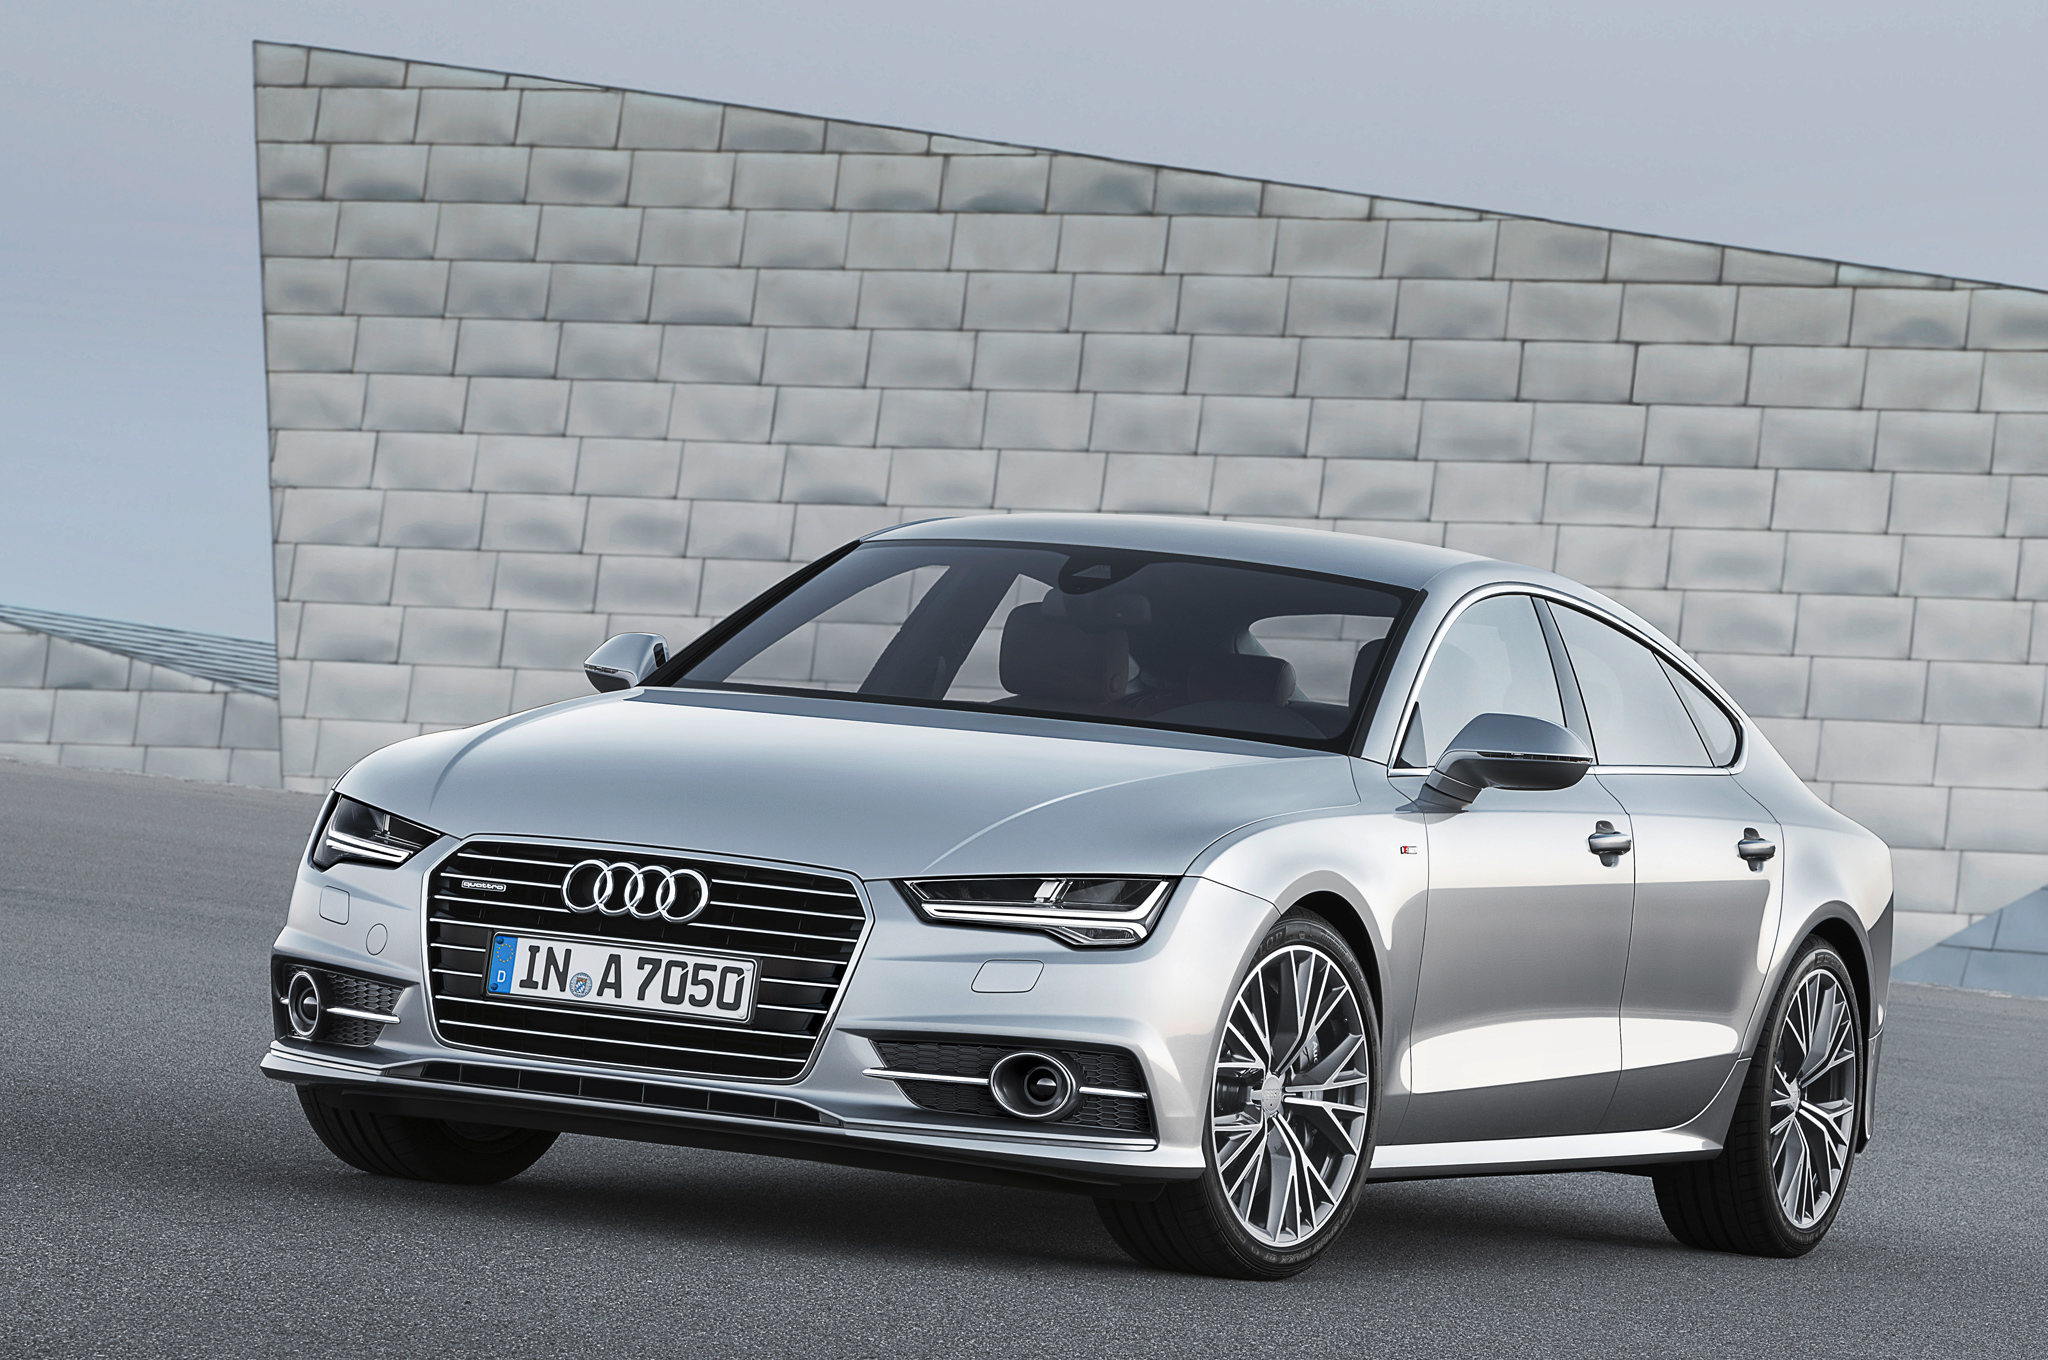 Updated 2015 Audi A7 Coming To U.S. Next Year